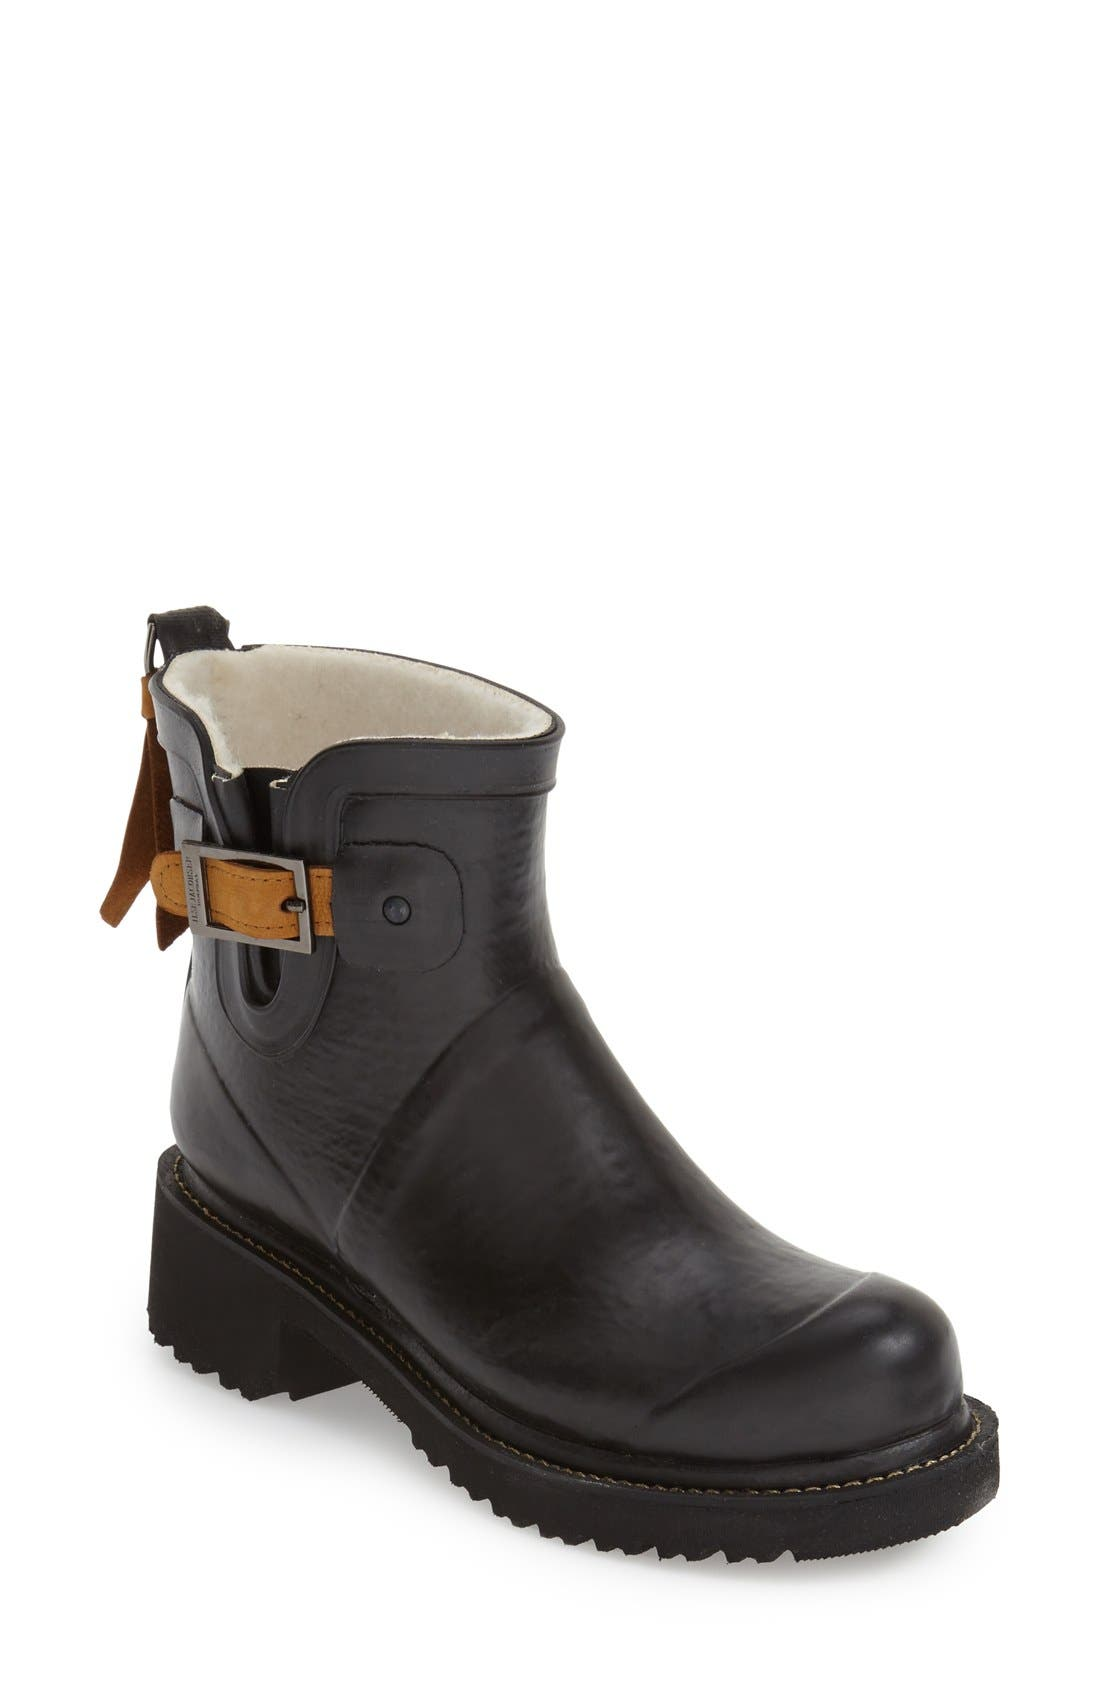 Ilse Jacobsen Short Waterproof Rubber Boot (Women)